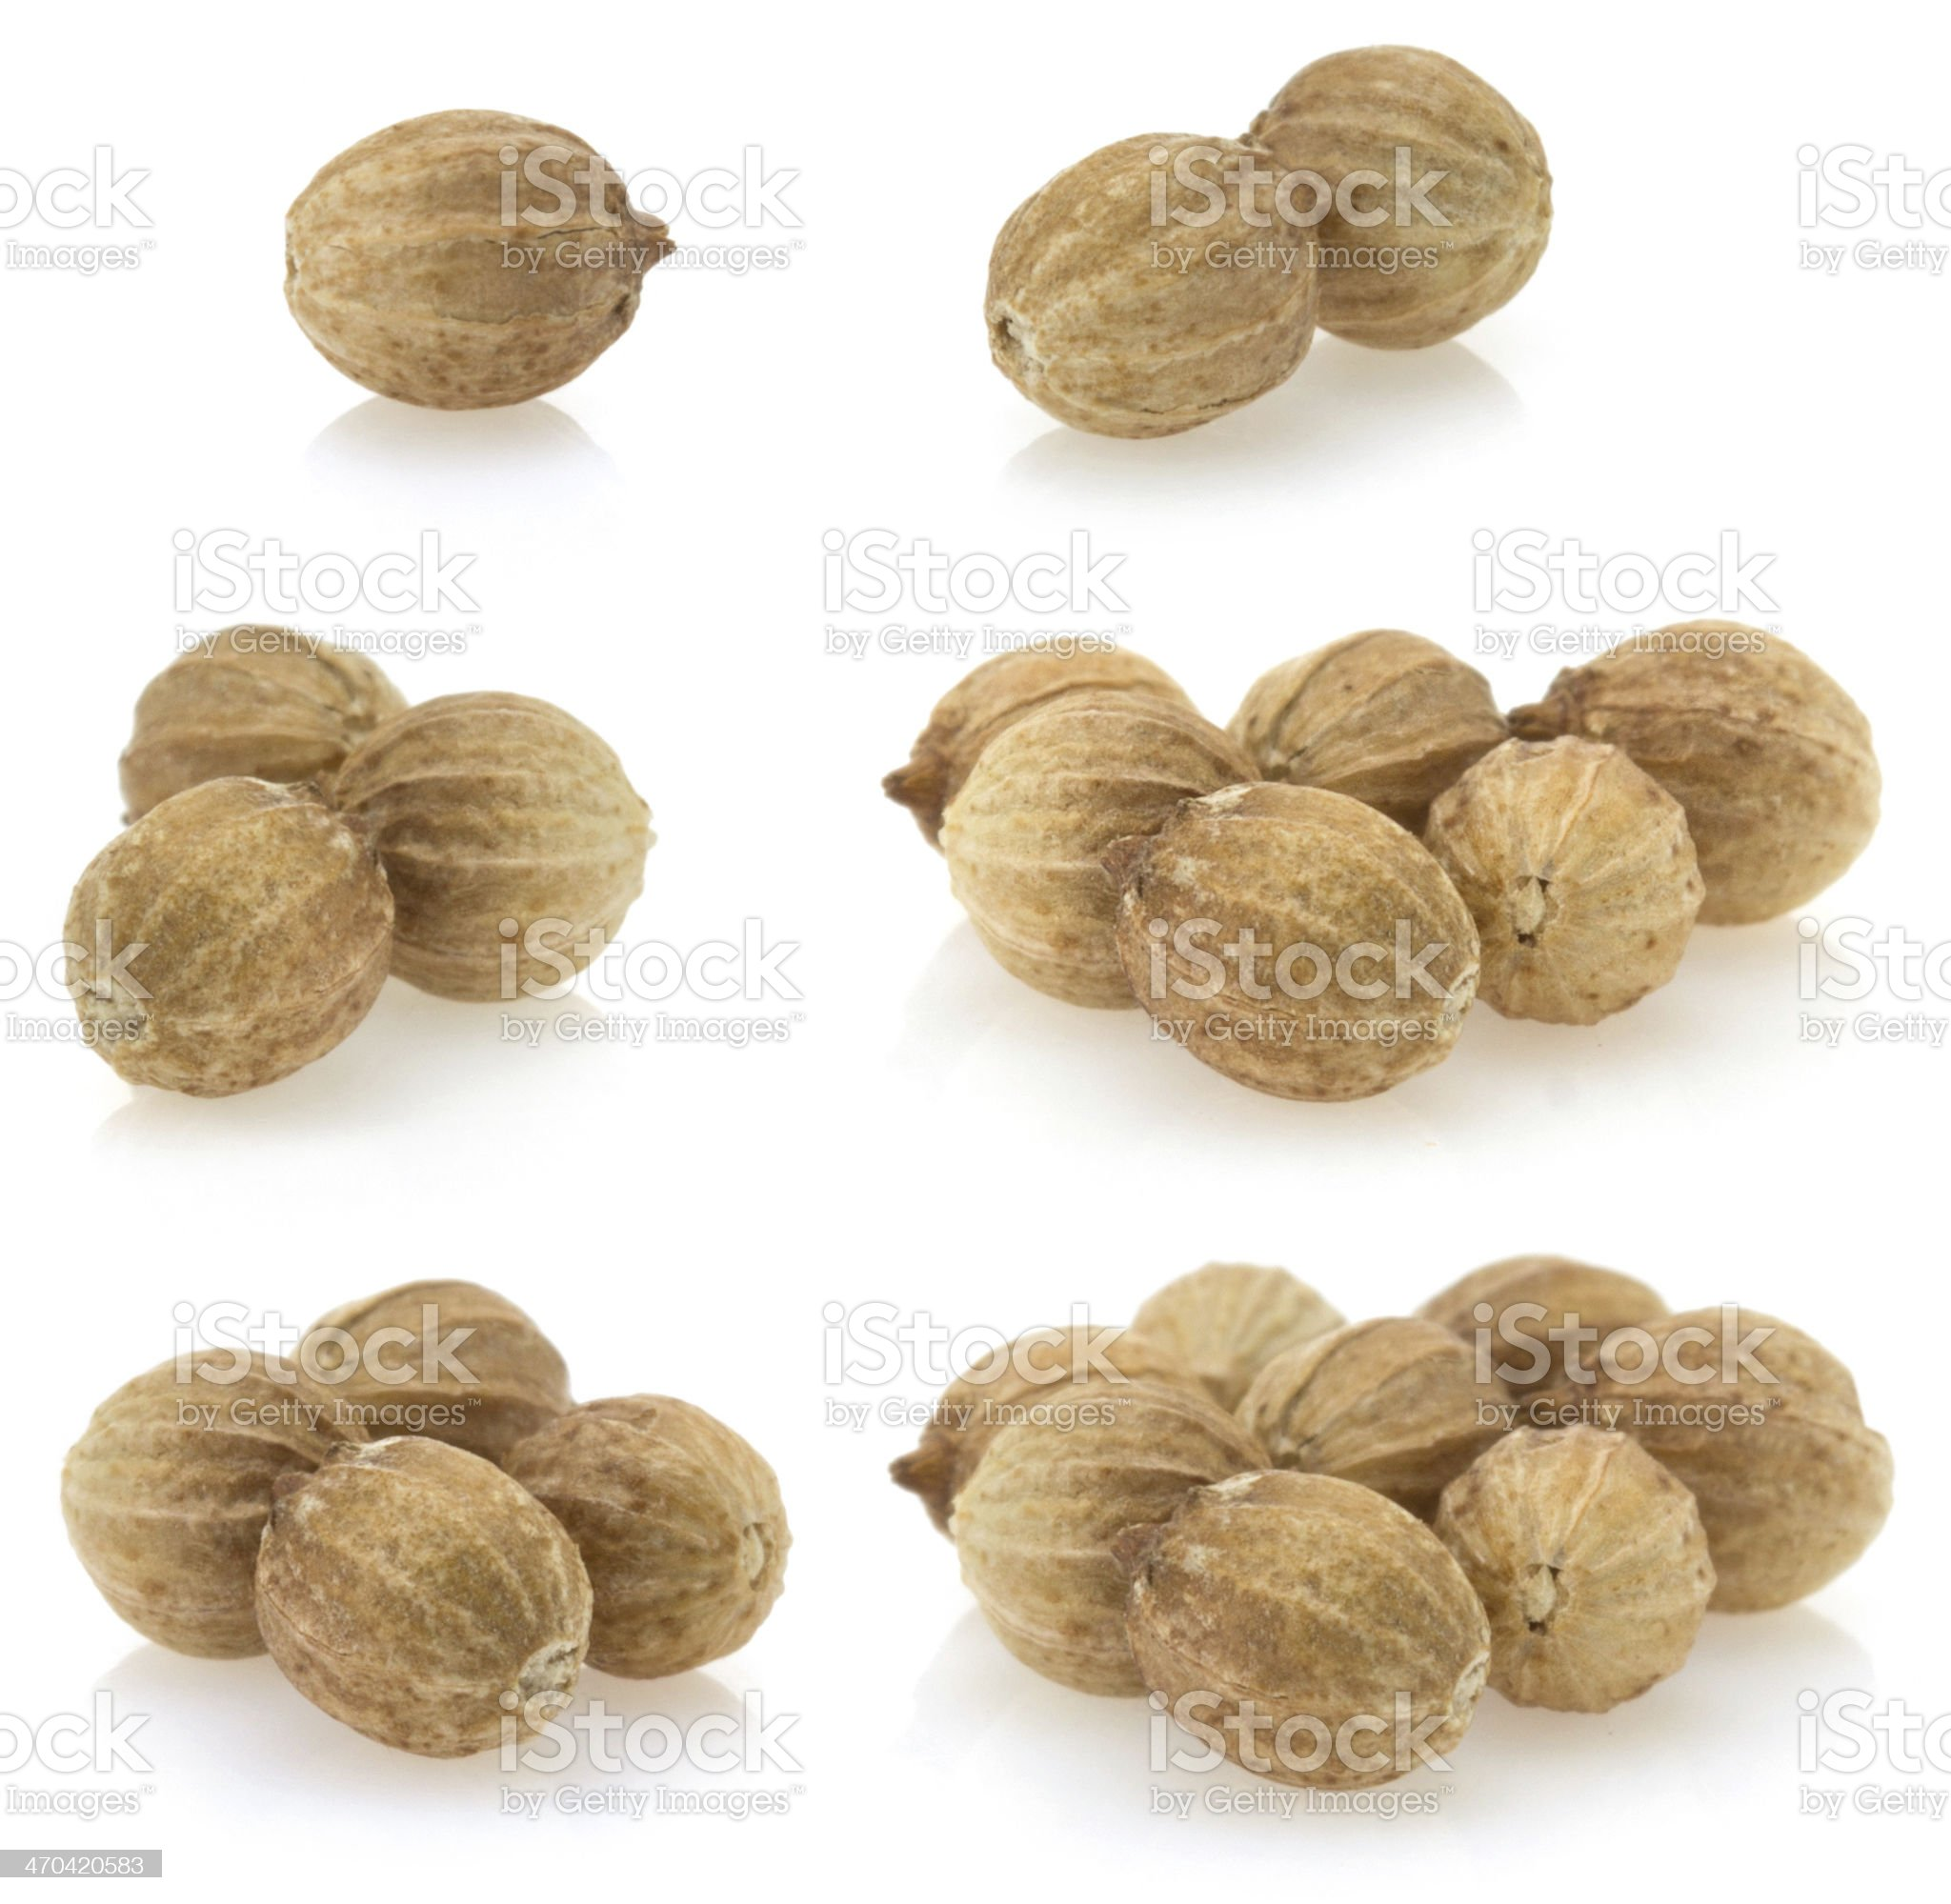 coriander on white background royalty-free stock photo